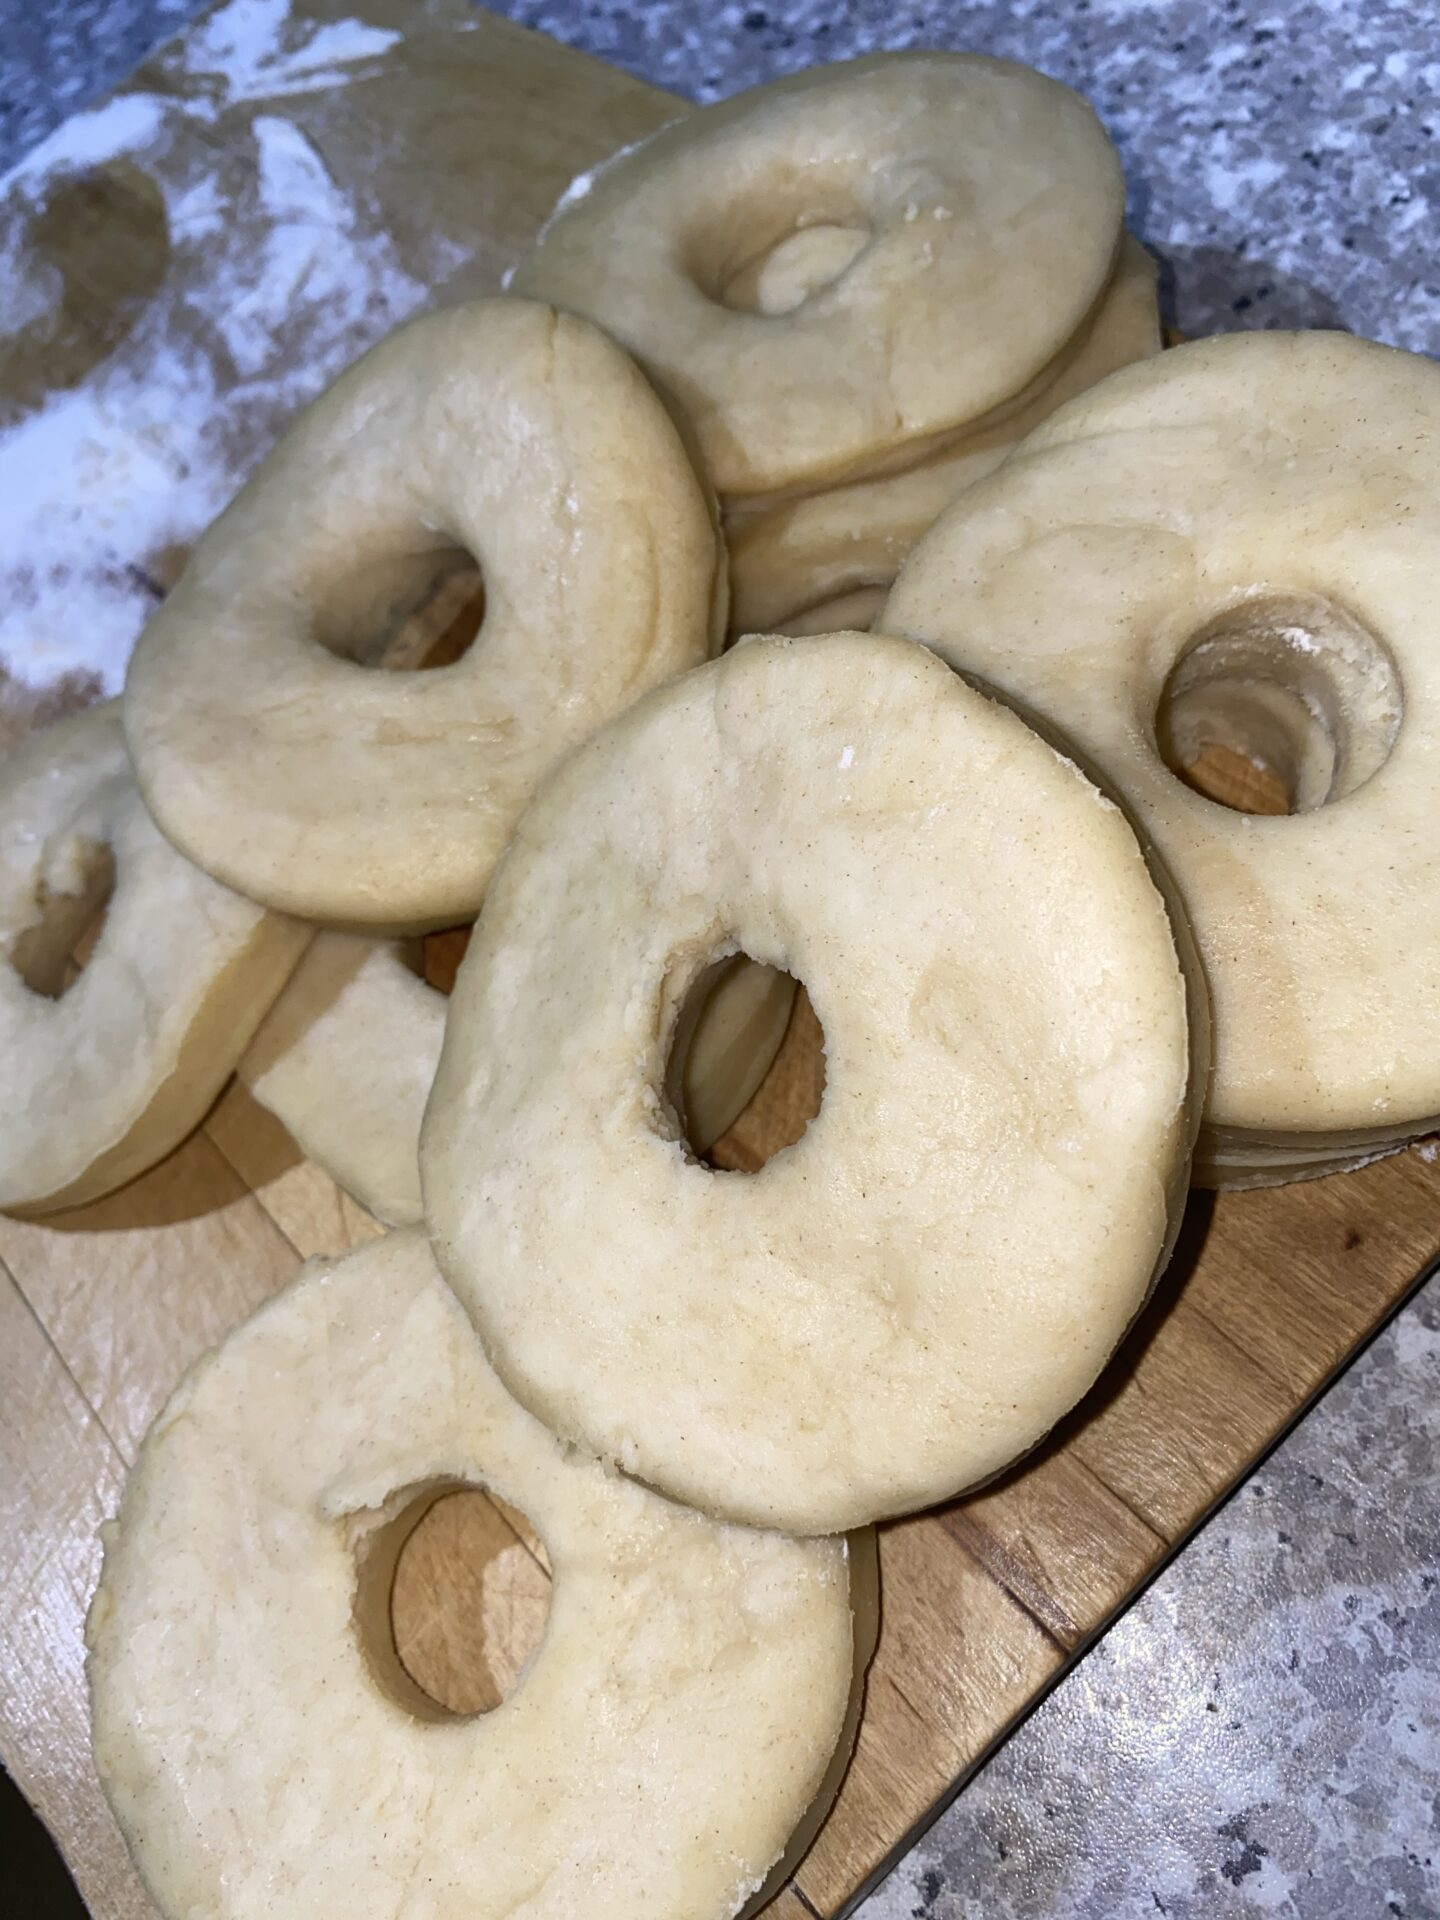 This image shows the formed dough for the doughnut recipe.